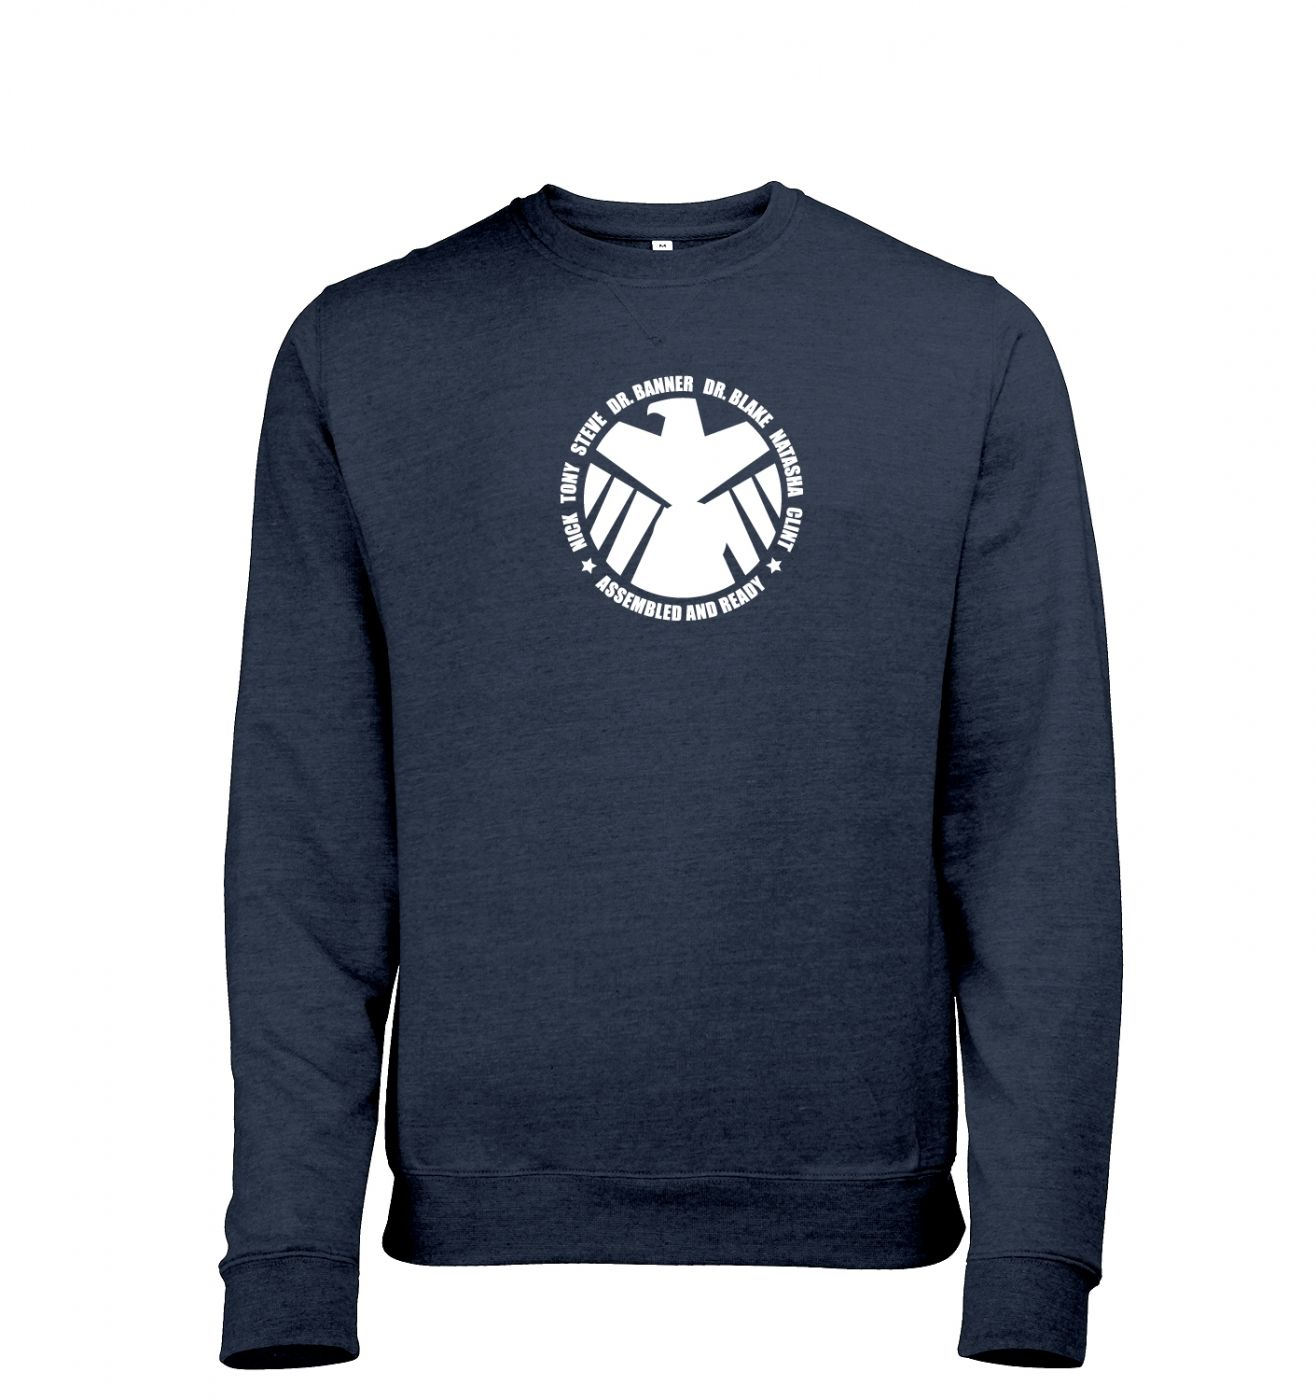 Assembled and Ready heather sweatshirt